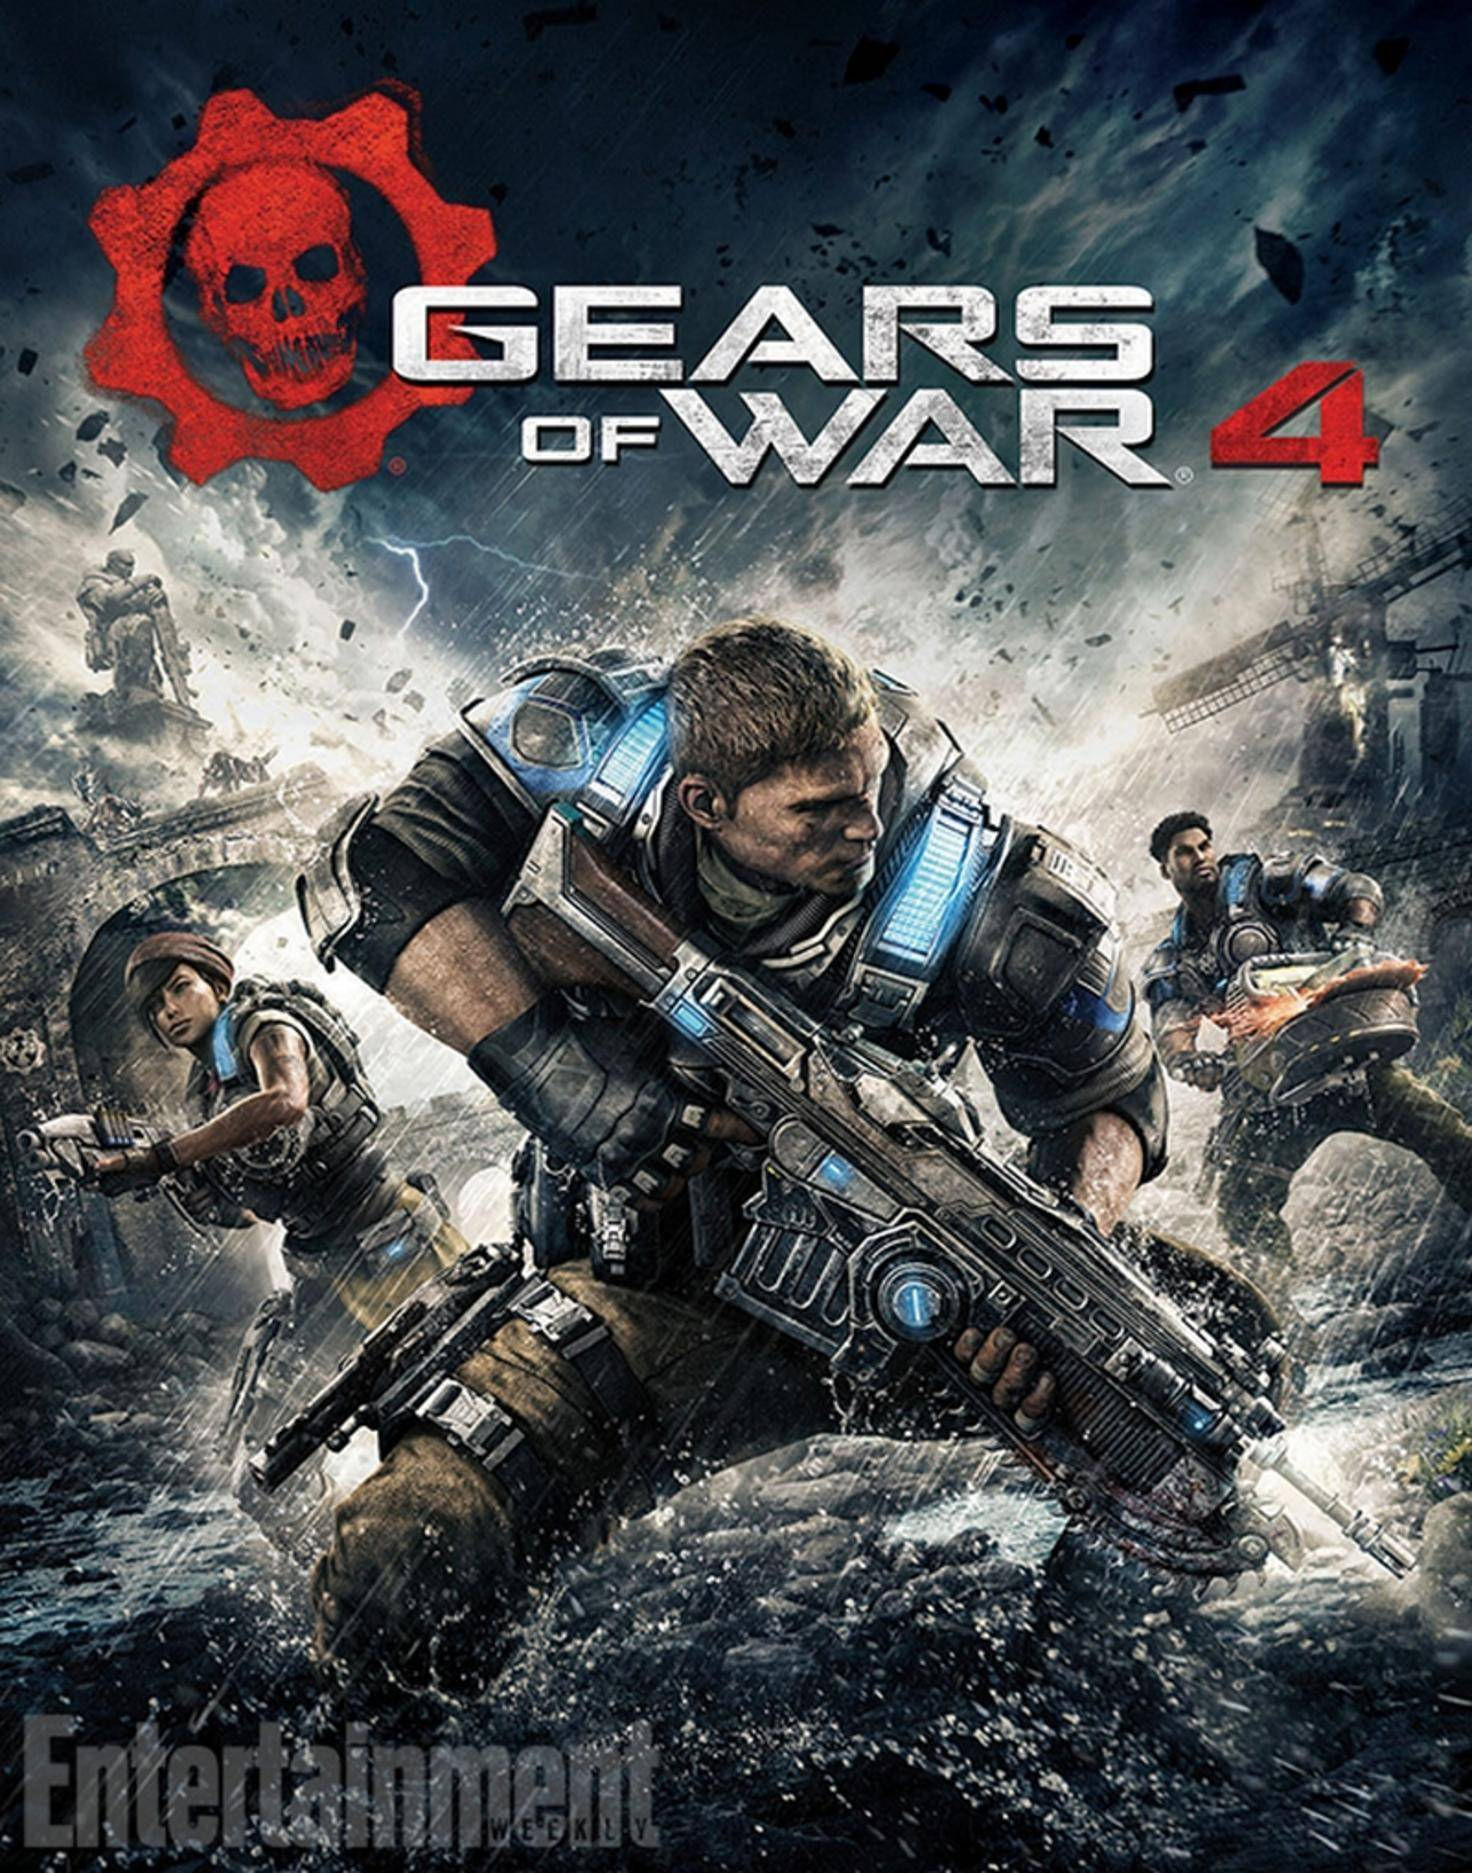 Gears_of_War4_Cover